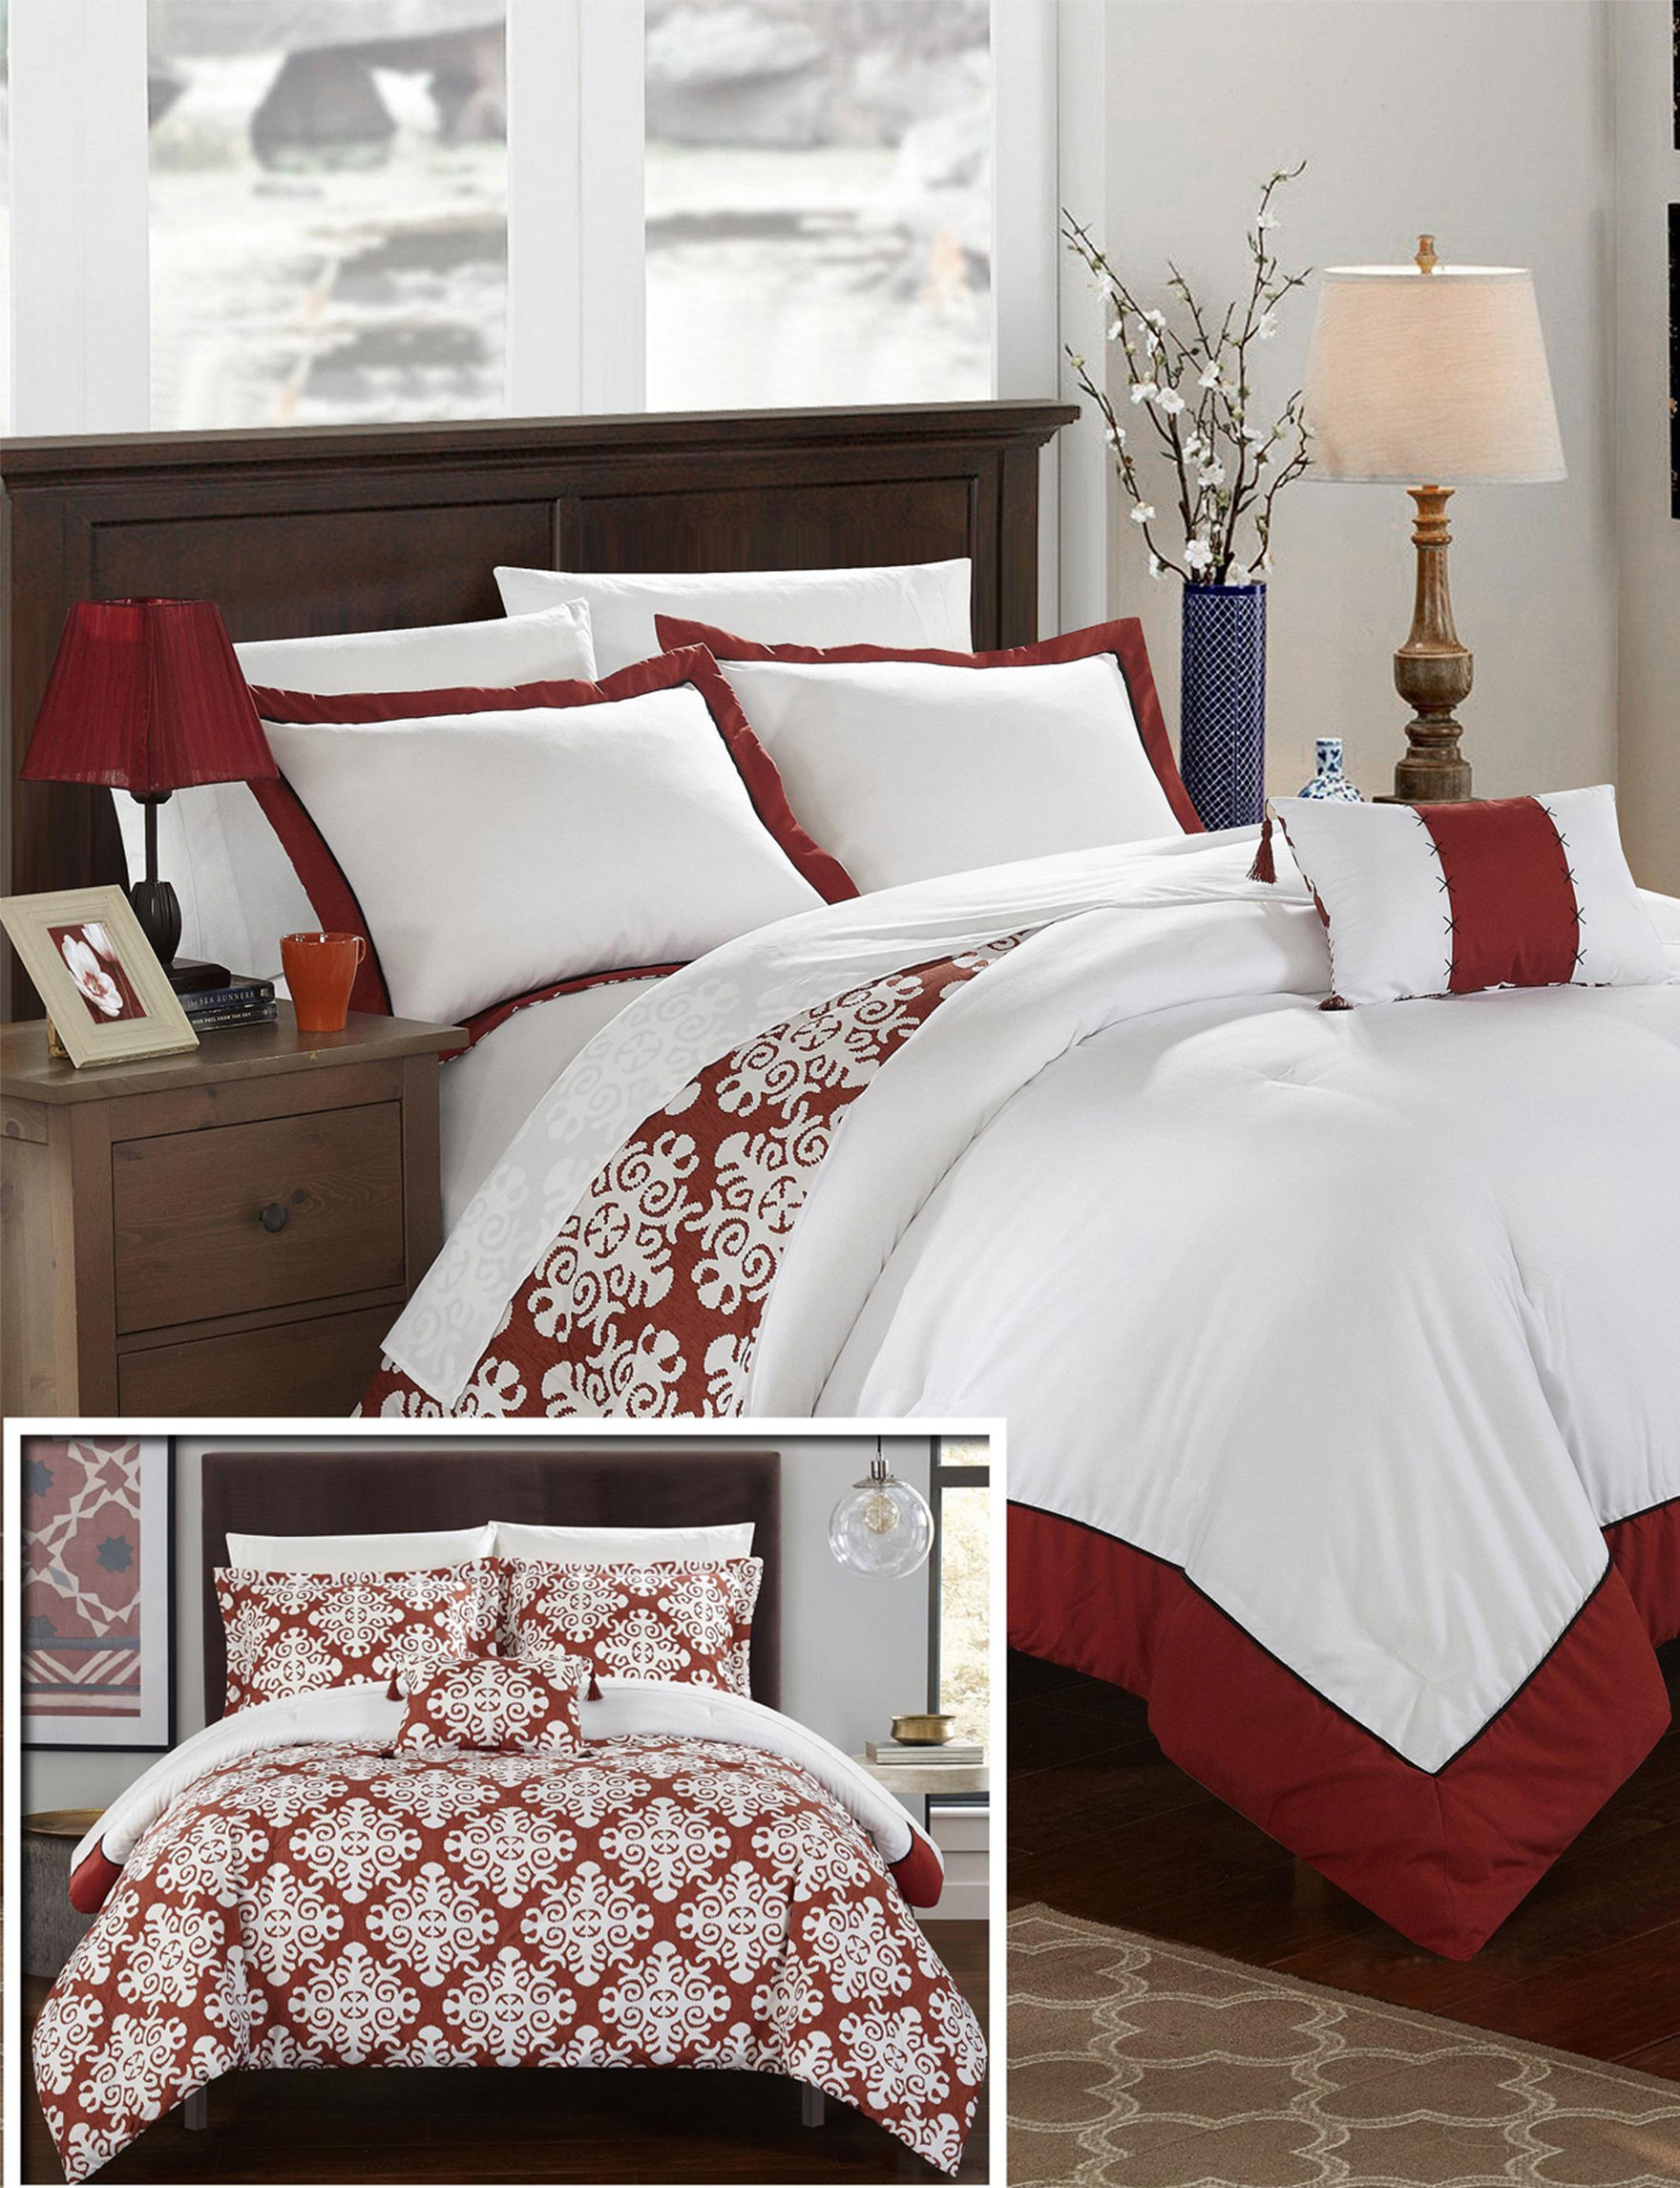 Chic Home Design Red Duvet Duvets & Duvet Sets